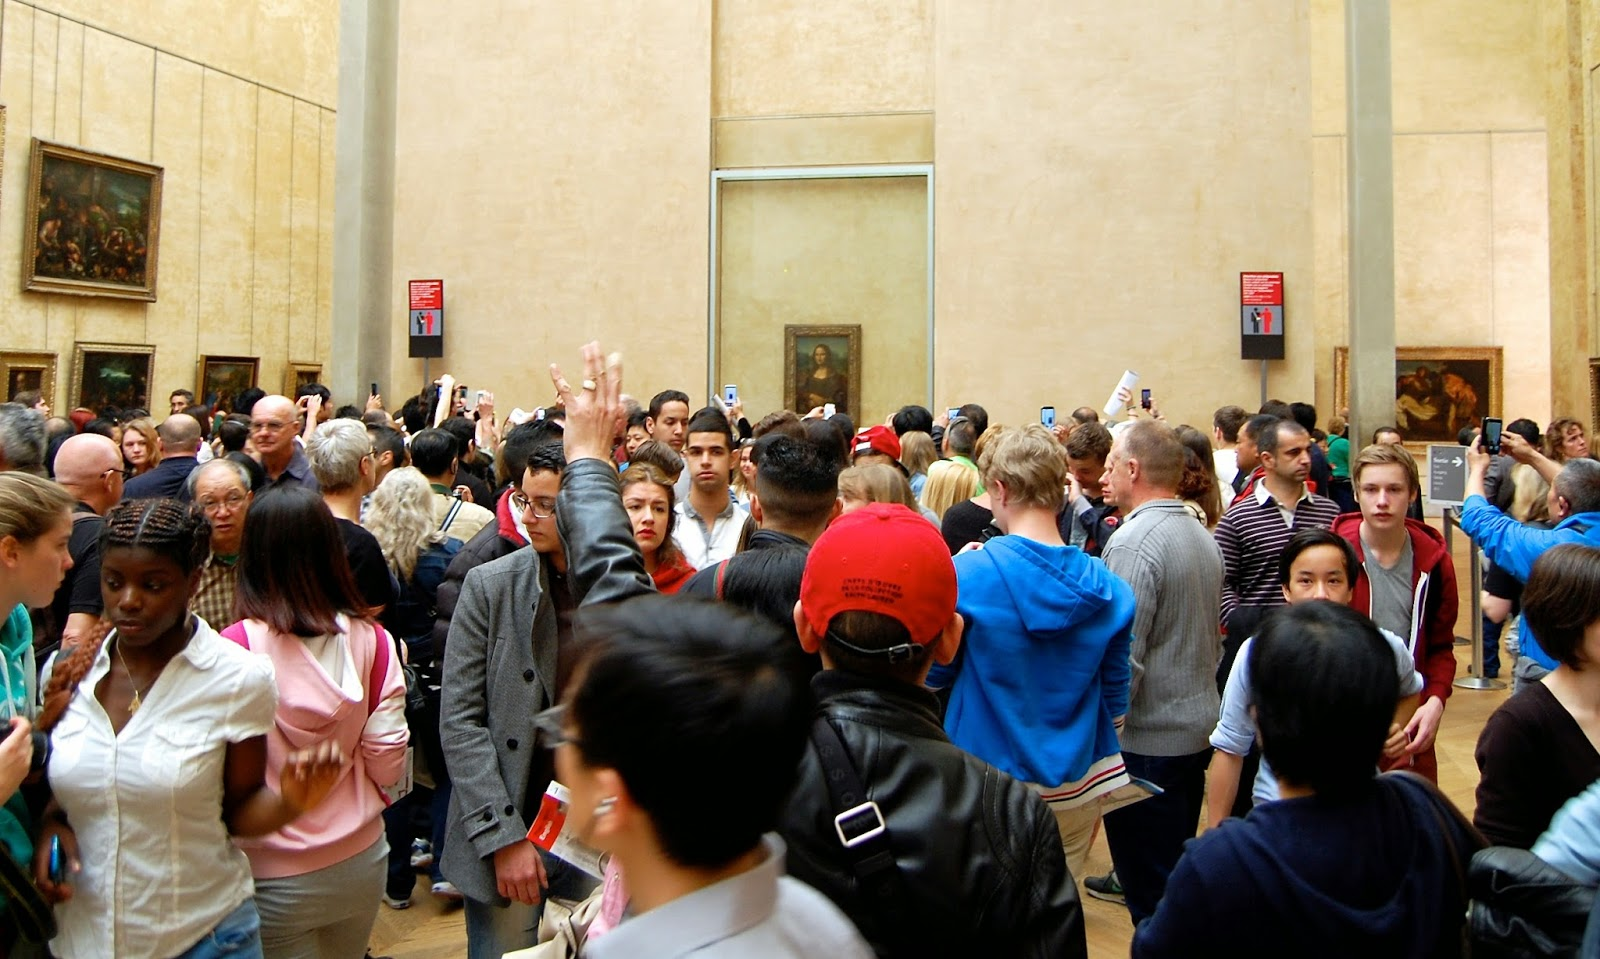 Mona Lisa crowd at the Musée du Louvre